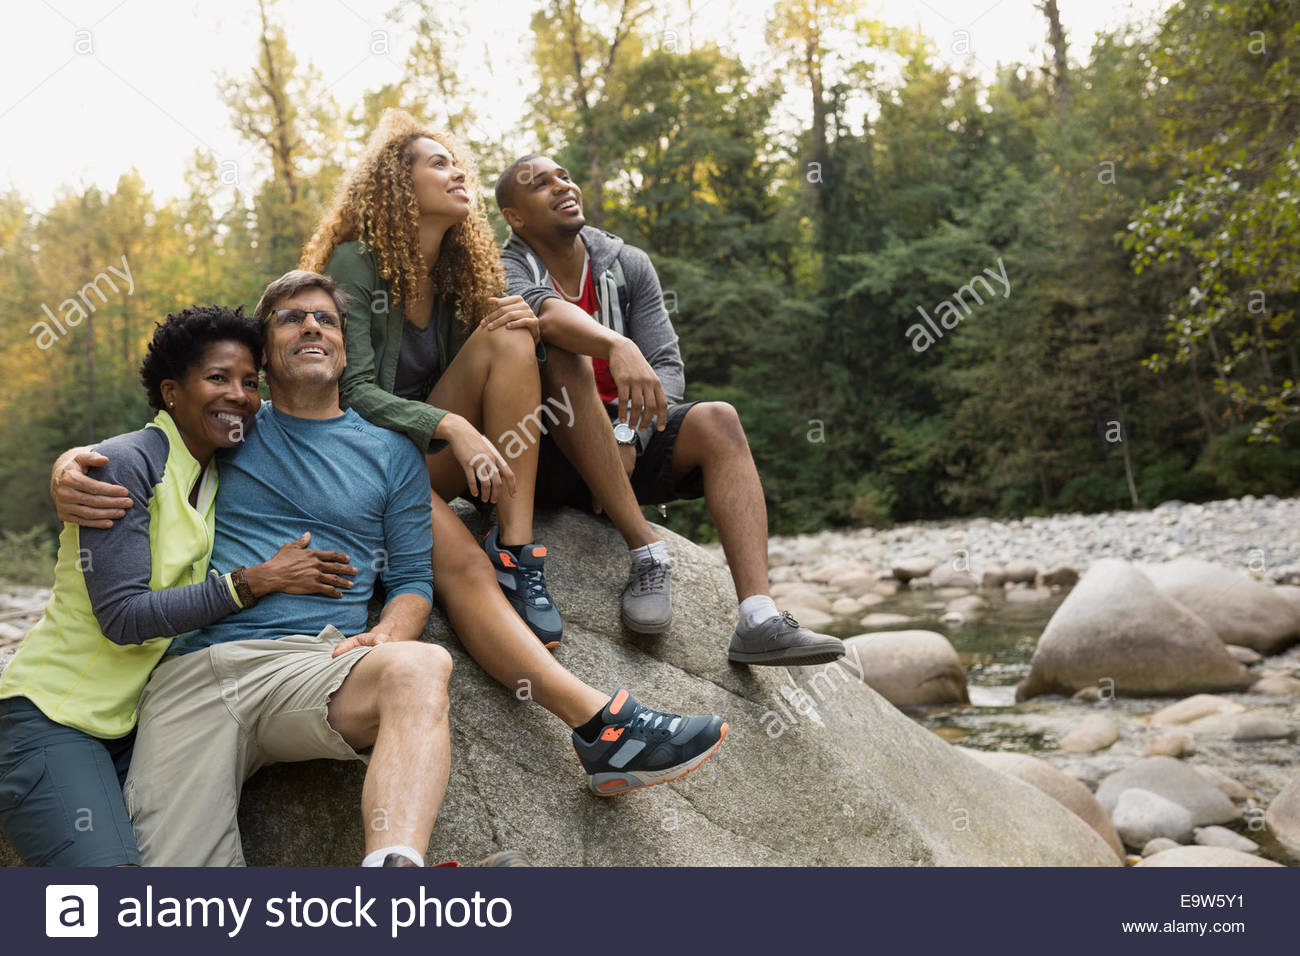 Friends on large rock in woods - Stock Image